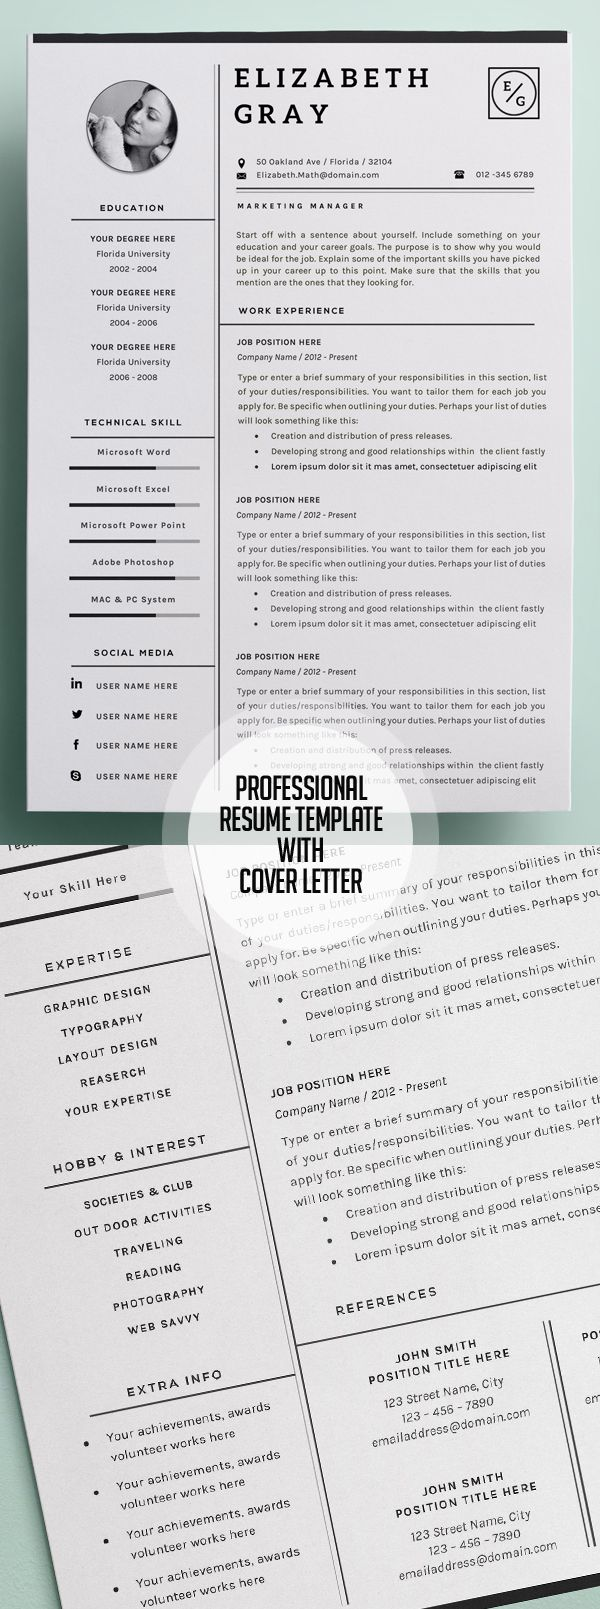 Opposenewapstandardsus  Pretty  Resume Ideas On Pinterest  Resume Resume Templates And  With Marvelous Professional And Modern Resume Template With Page Cover Cvtemplate With Divine Medical Secretary Resume Also Entry Level Customer Service Resume In Addition Sample Hr Resume And College Student Resume Example As Well As Craigslist Resume Additionally Resume Plural From Pinterestcom With Opposenewapstandardsus  Marvelous  Resume Ideas On Pinterest  Resume Resume Templates And  With Divine Professional And Modern Resume Template With Page Cover Cvtemplate And Pretty Medical Secretary Resume Also Entry Level Customer Service Resume In Addition Sample Hr Resume From Pinterestcom